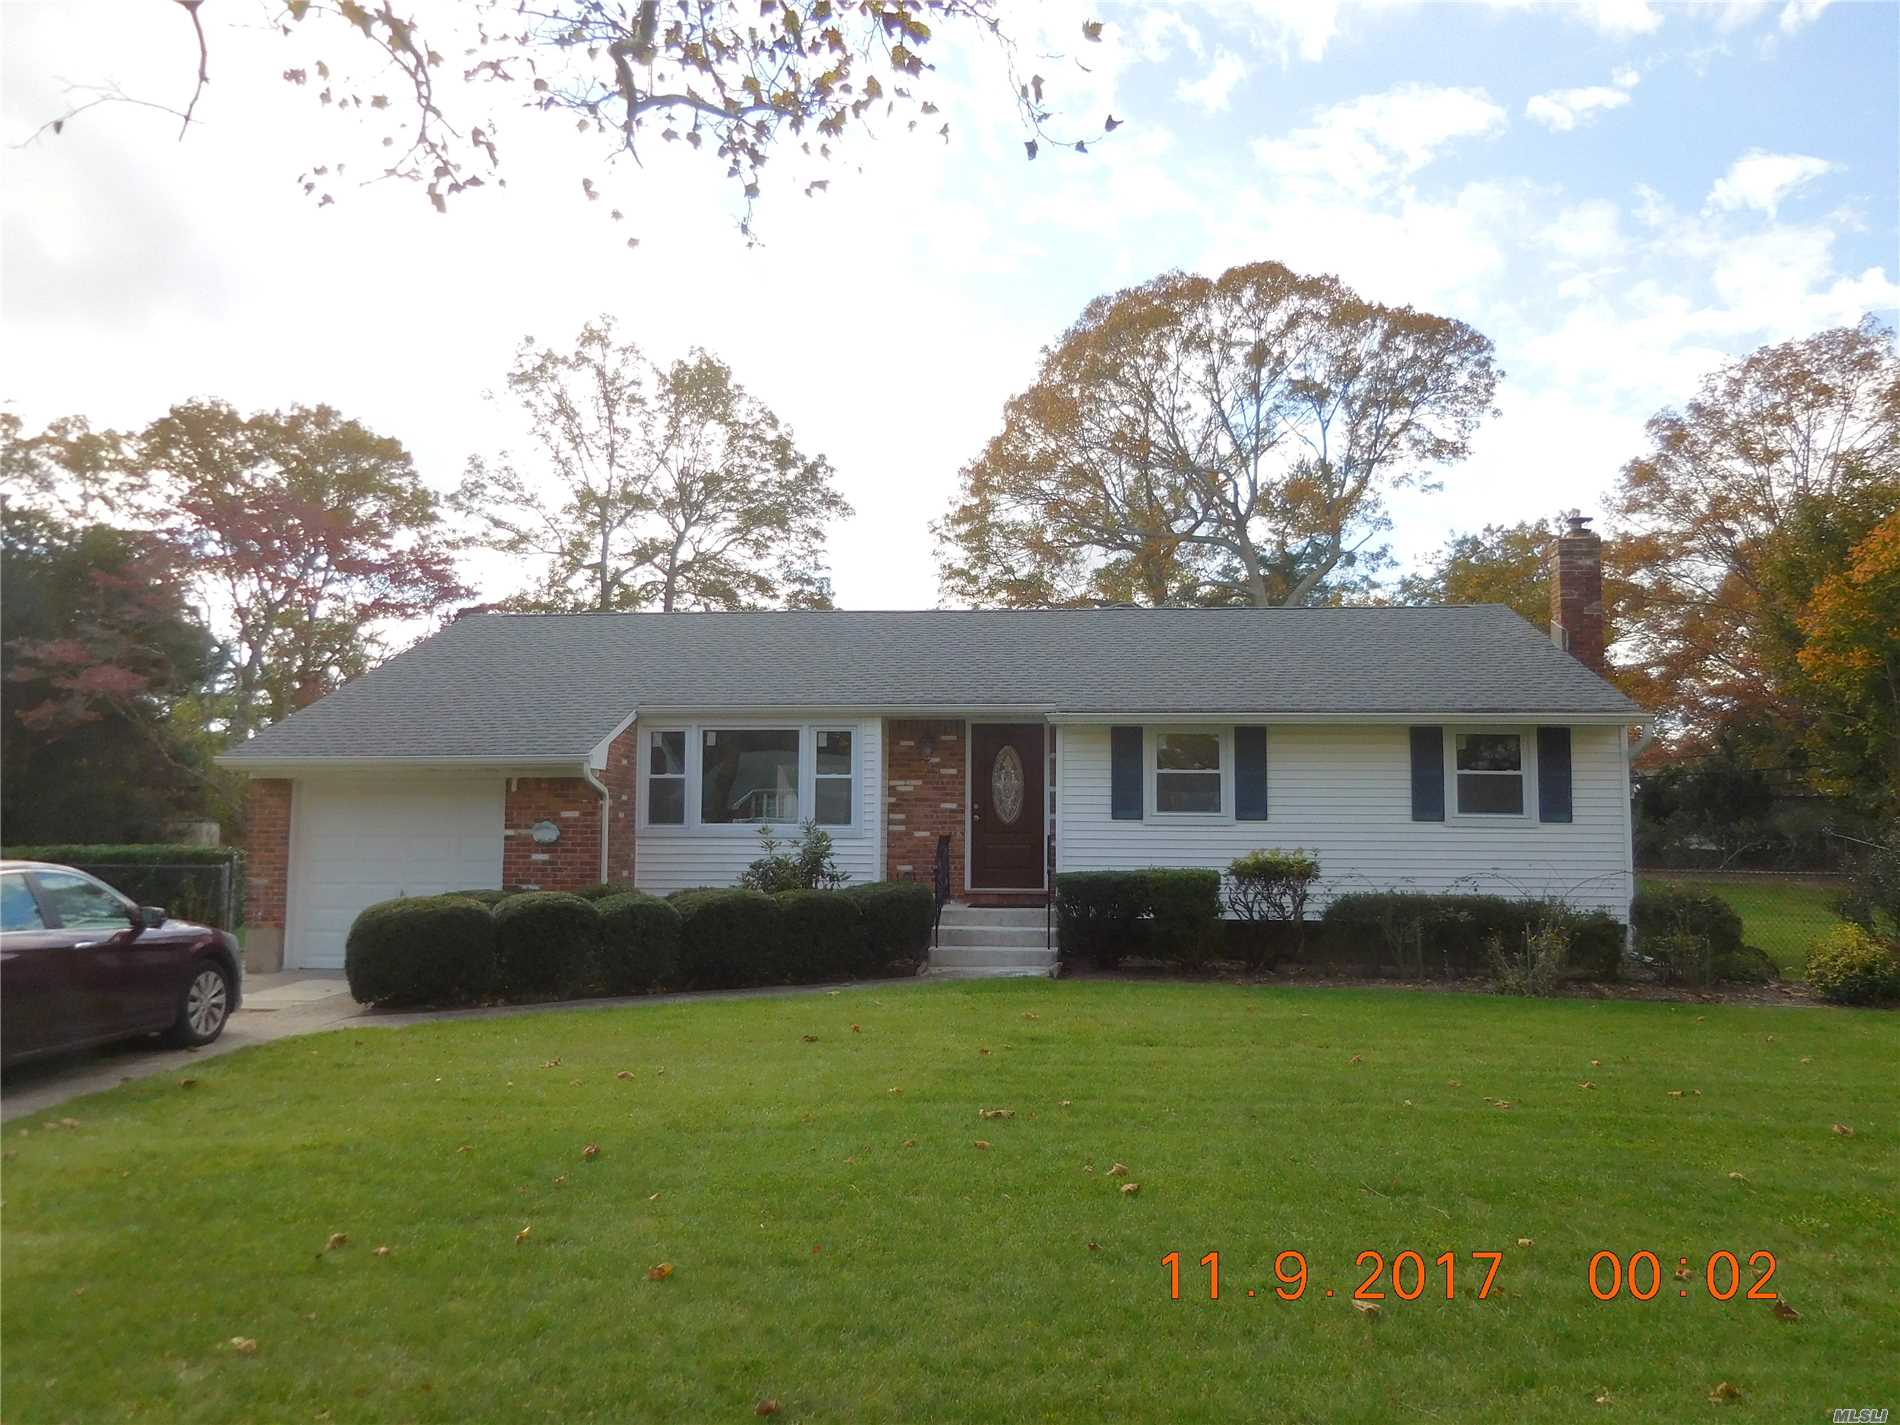 Pristine Home In Town Of Smithtown. Completely Renovated. New Everything. Brand New Kitch, Bathrm, Ss Appl, Cabinets, Granite Cntrtops, Fixtures, Washer, Dryer, Windows, Doors, Lighting. New Floors. Access From Garage To House. Large Backyard And Patio With Awning. Full Basement, Cac, Gas Heat. Smithtown Schools. Close To Everything. Available July 1, 2019.